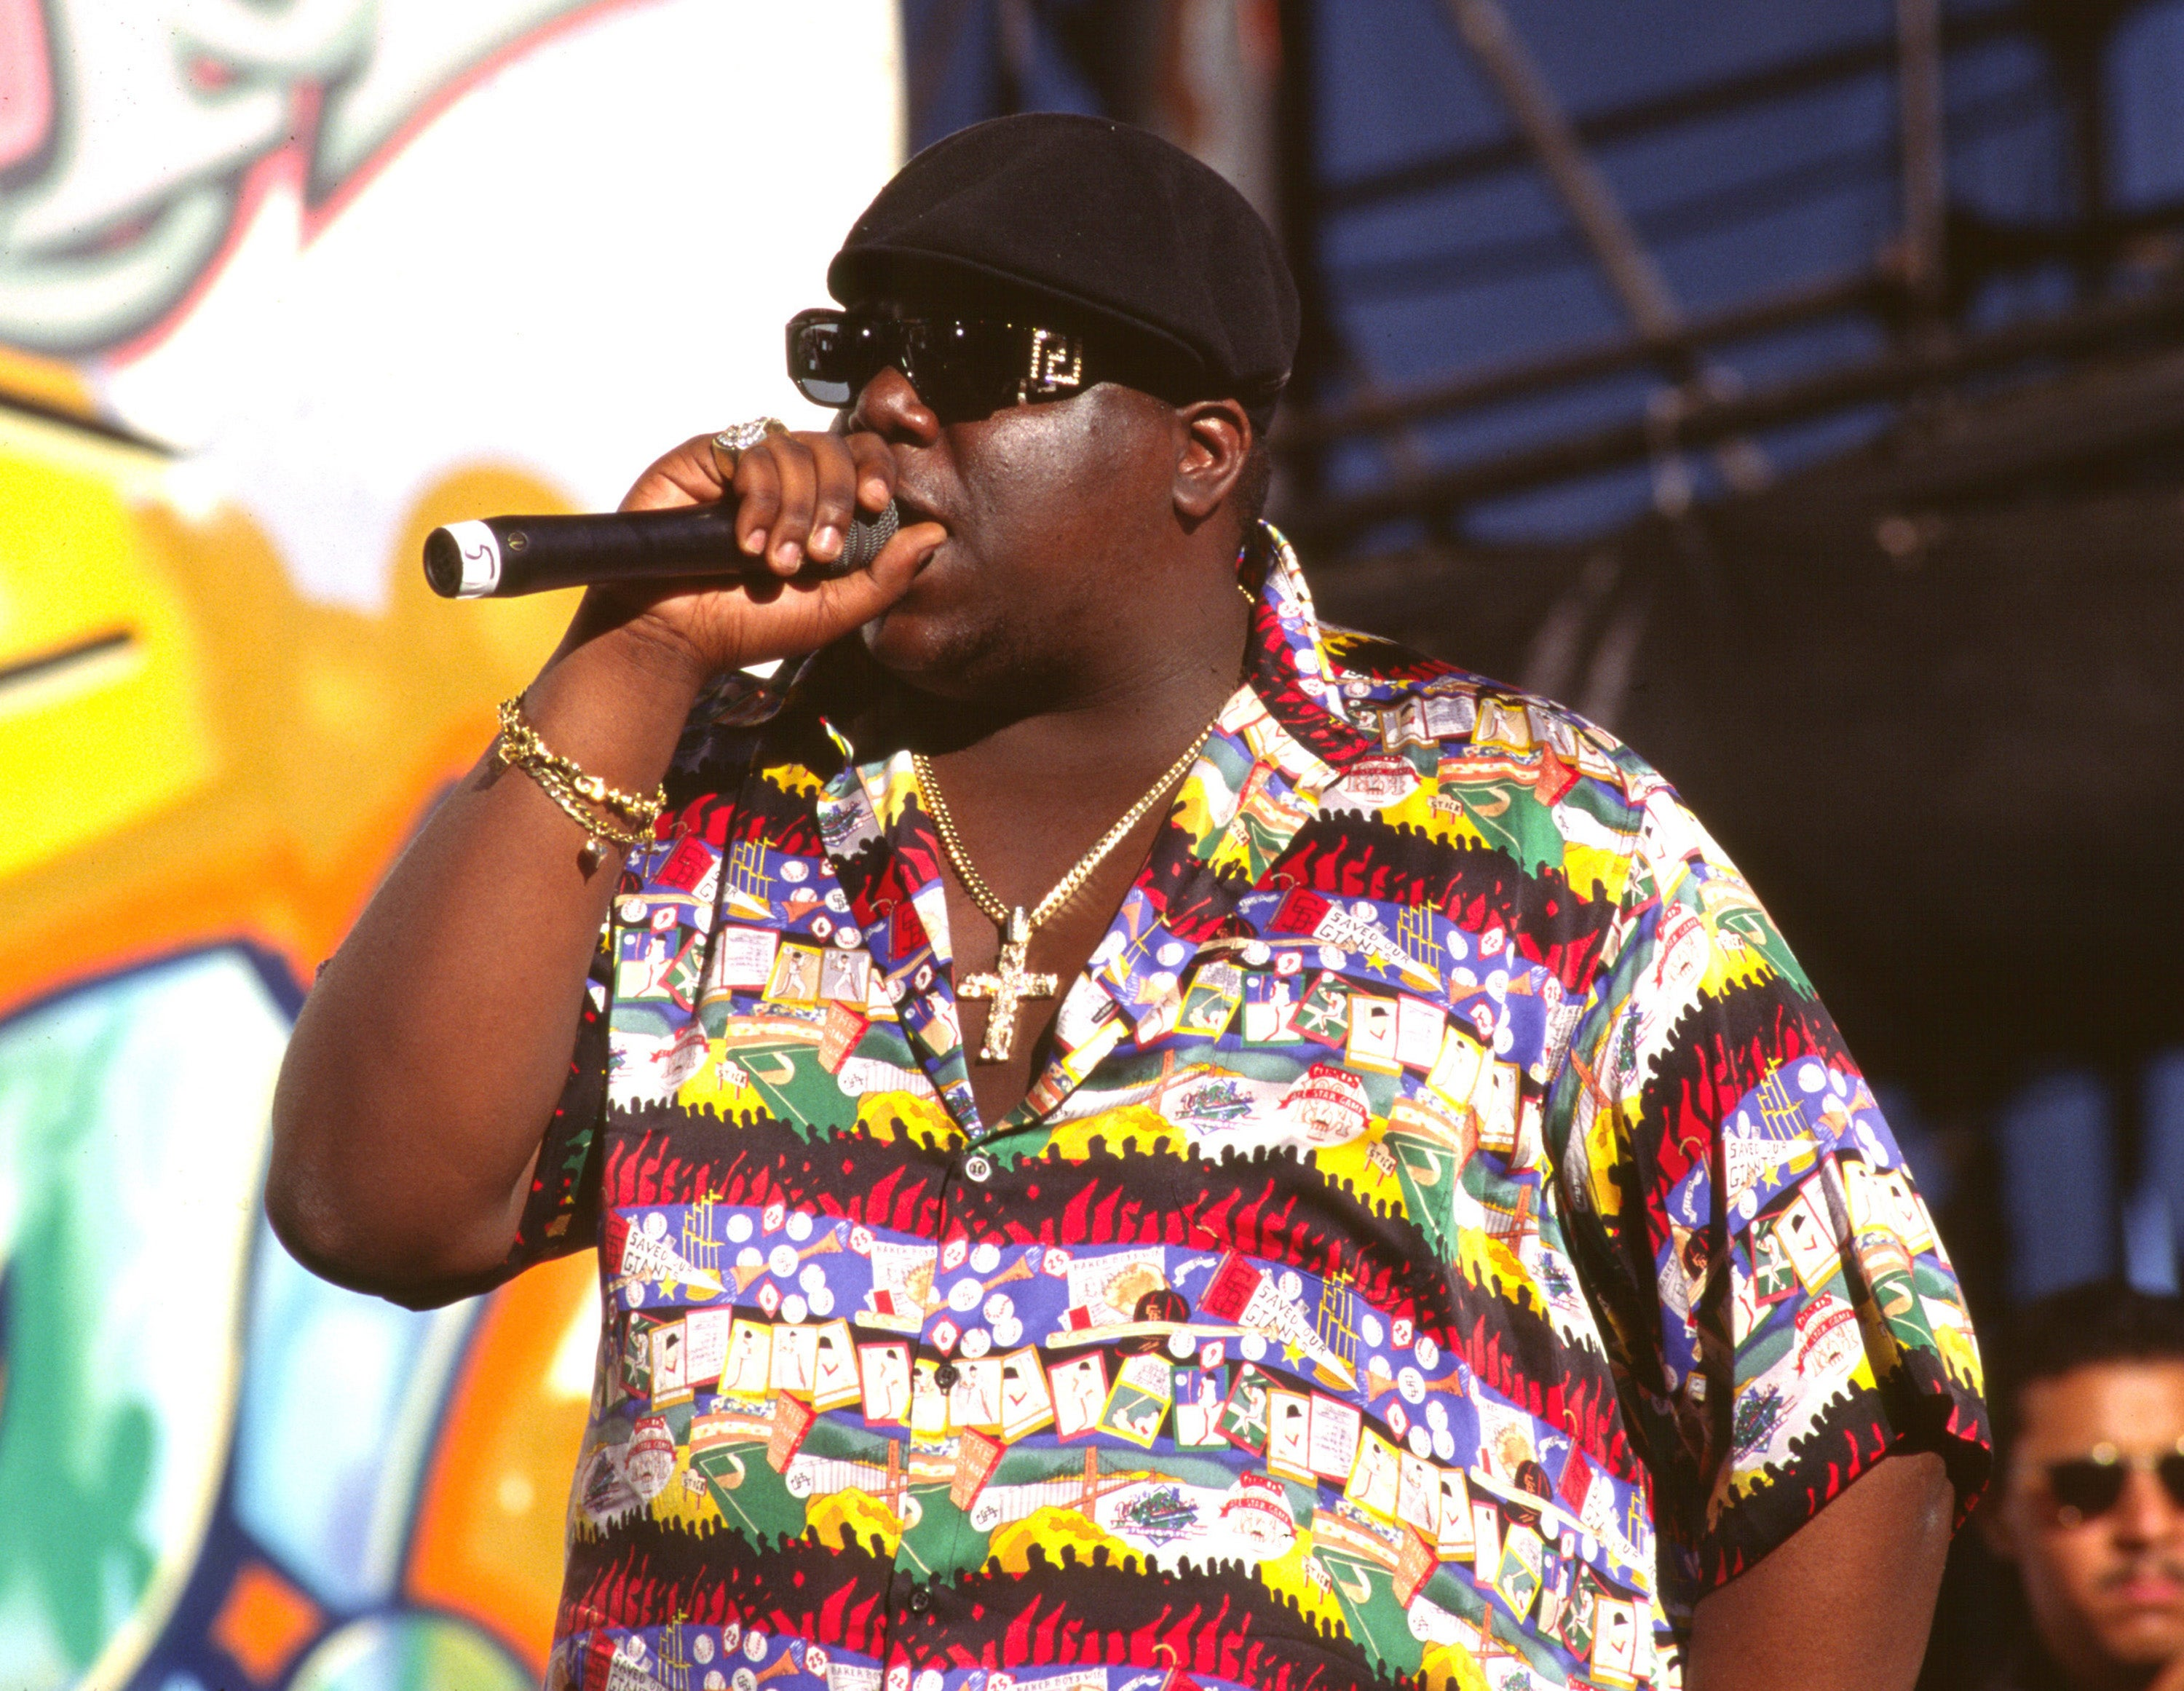 The Legendary Notorious B.I.G. To Be Honored With A Street Naming Ceremony in Brooklyn